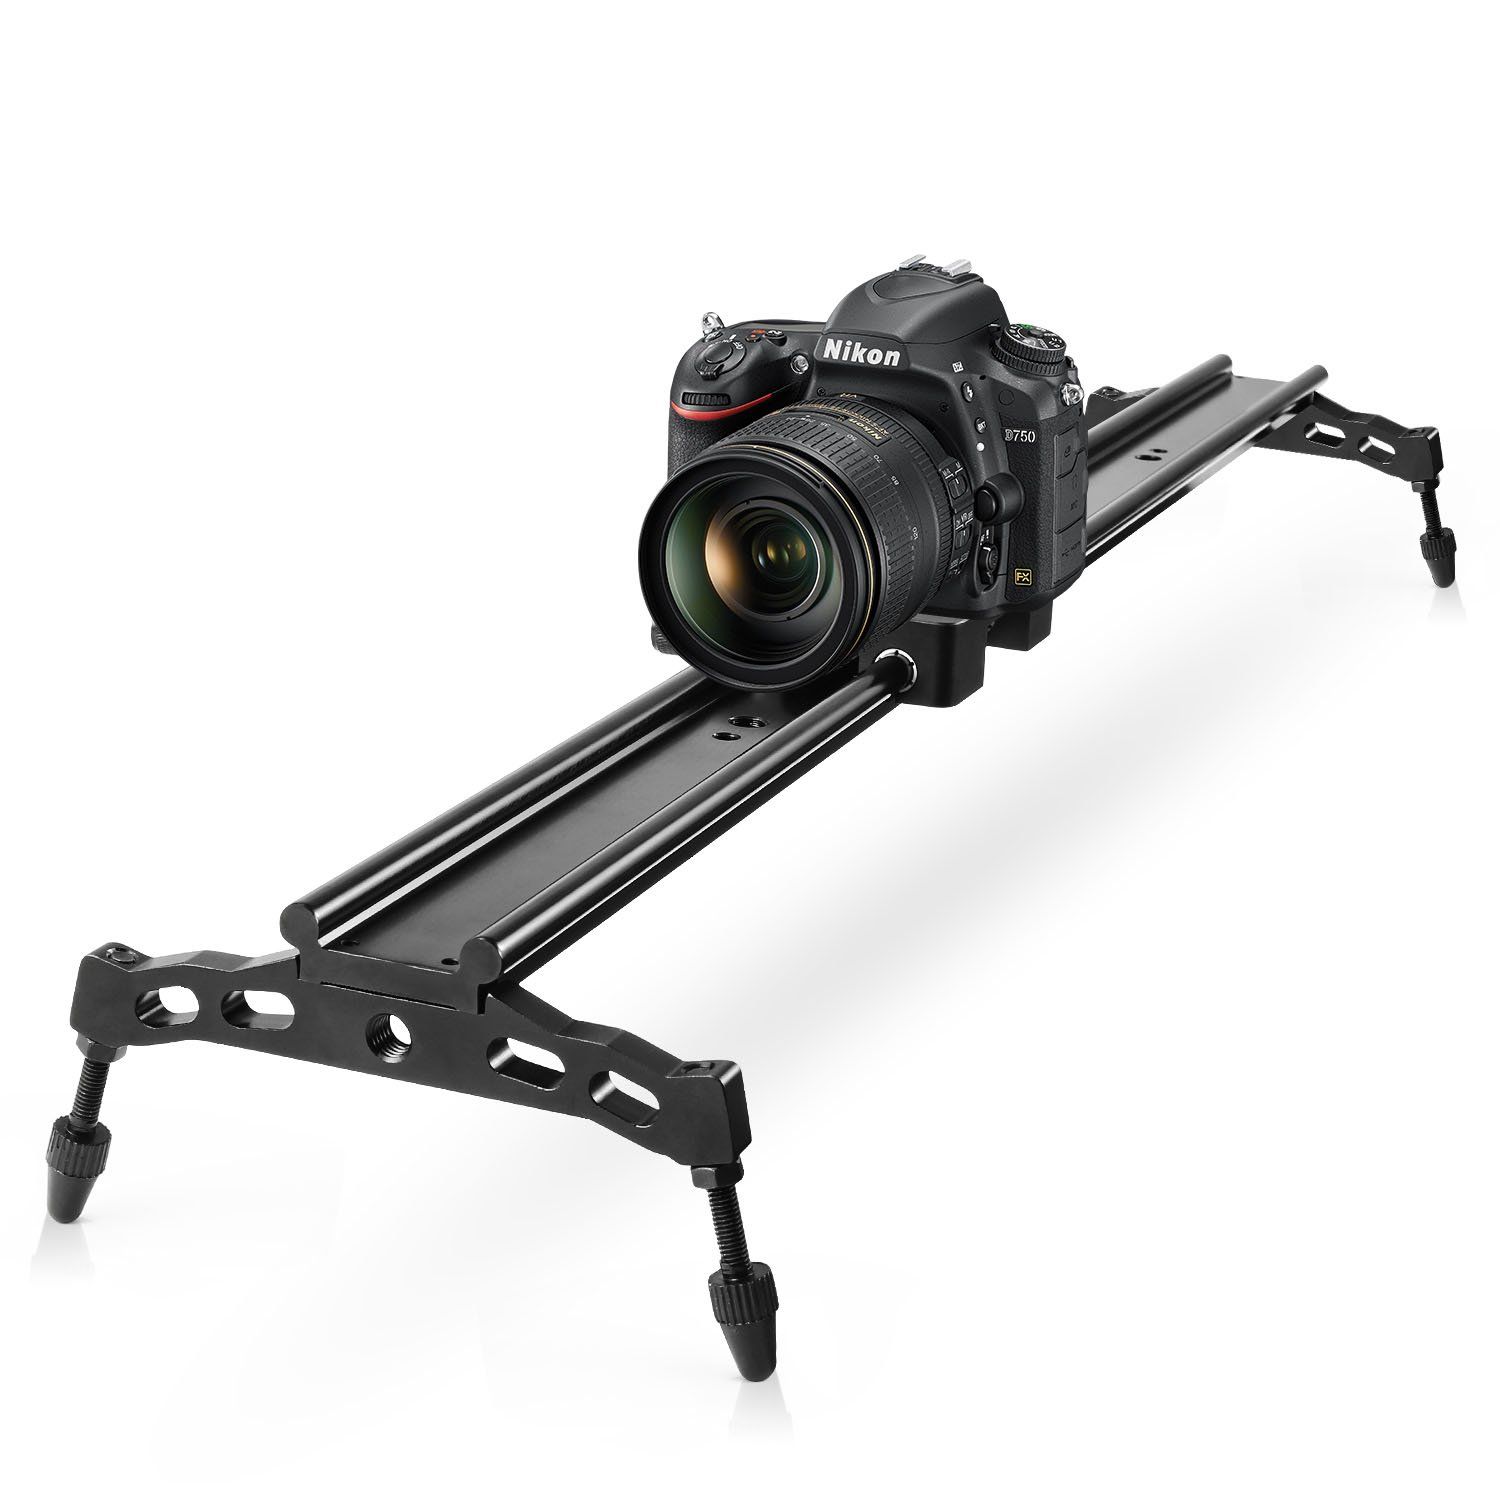 COOCHEER Camera Slider, Aluminum DSLR Dolly Track Rail Perfect for Photography and Video Recording with 1/4'' 3/8'' Screw for YouTube Video and Short filmmakers (80cm Camera Slider)